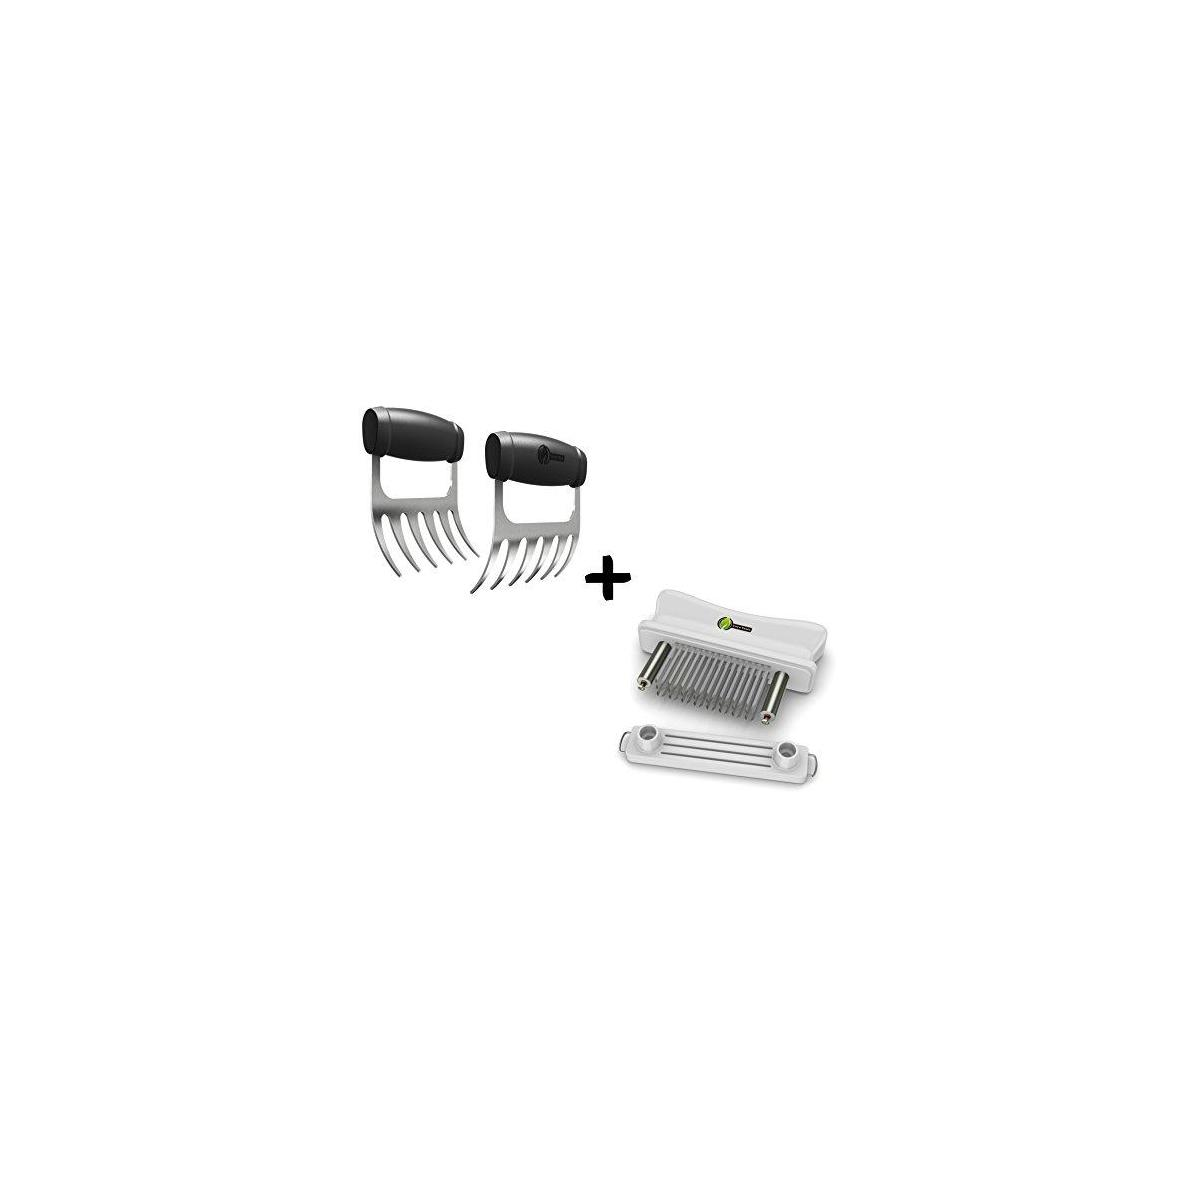 Meat Claws - Stainless Steel Pulled Pork SHREDDERS + Blade Tenderizer - Unique Puncture Pair Design - Needles Tenderize Chicken Steak & Other Meats - Dishwasher Safe Kitchen Tools & Cooking Gift Idea